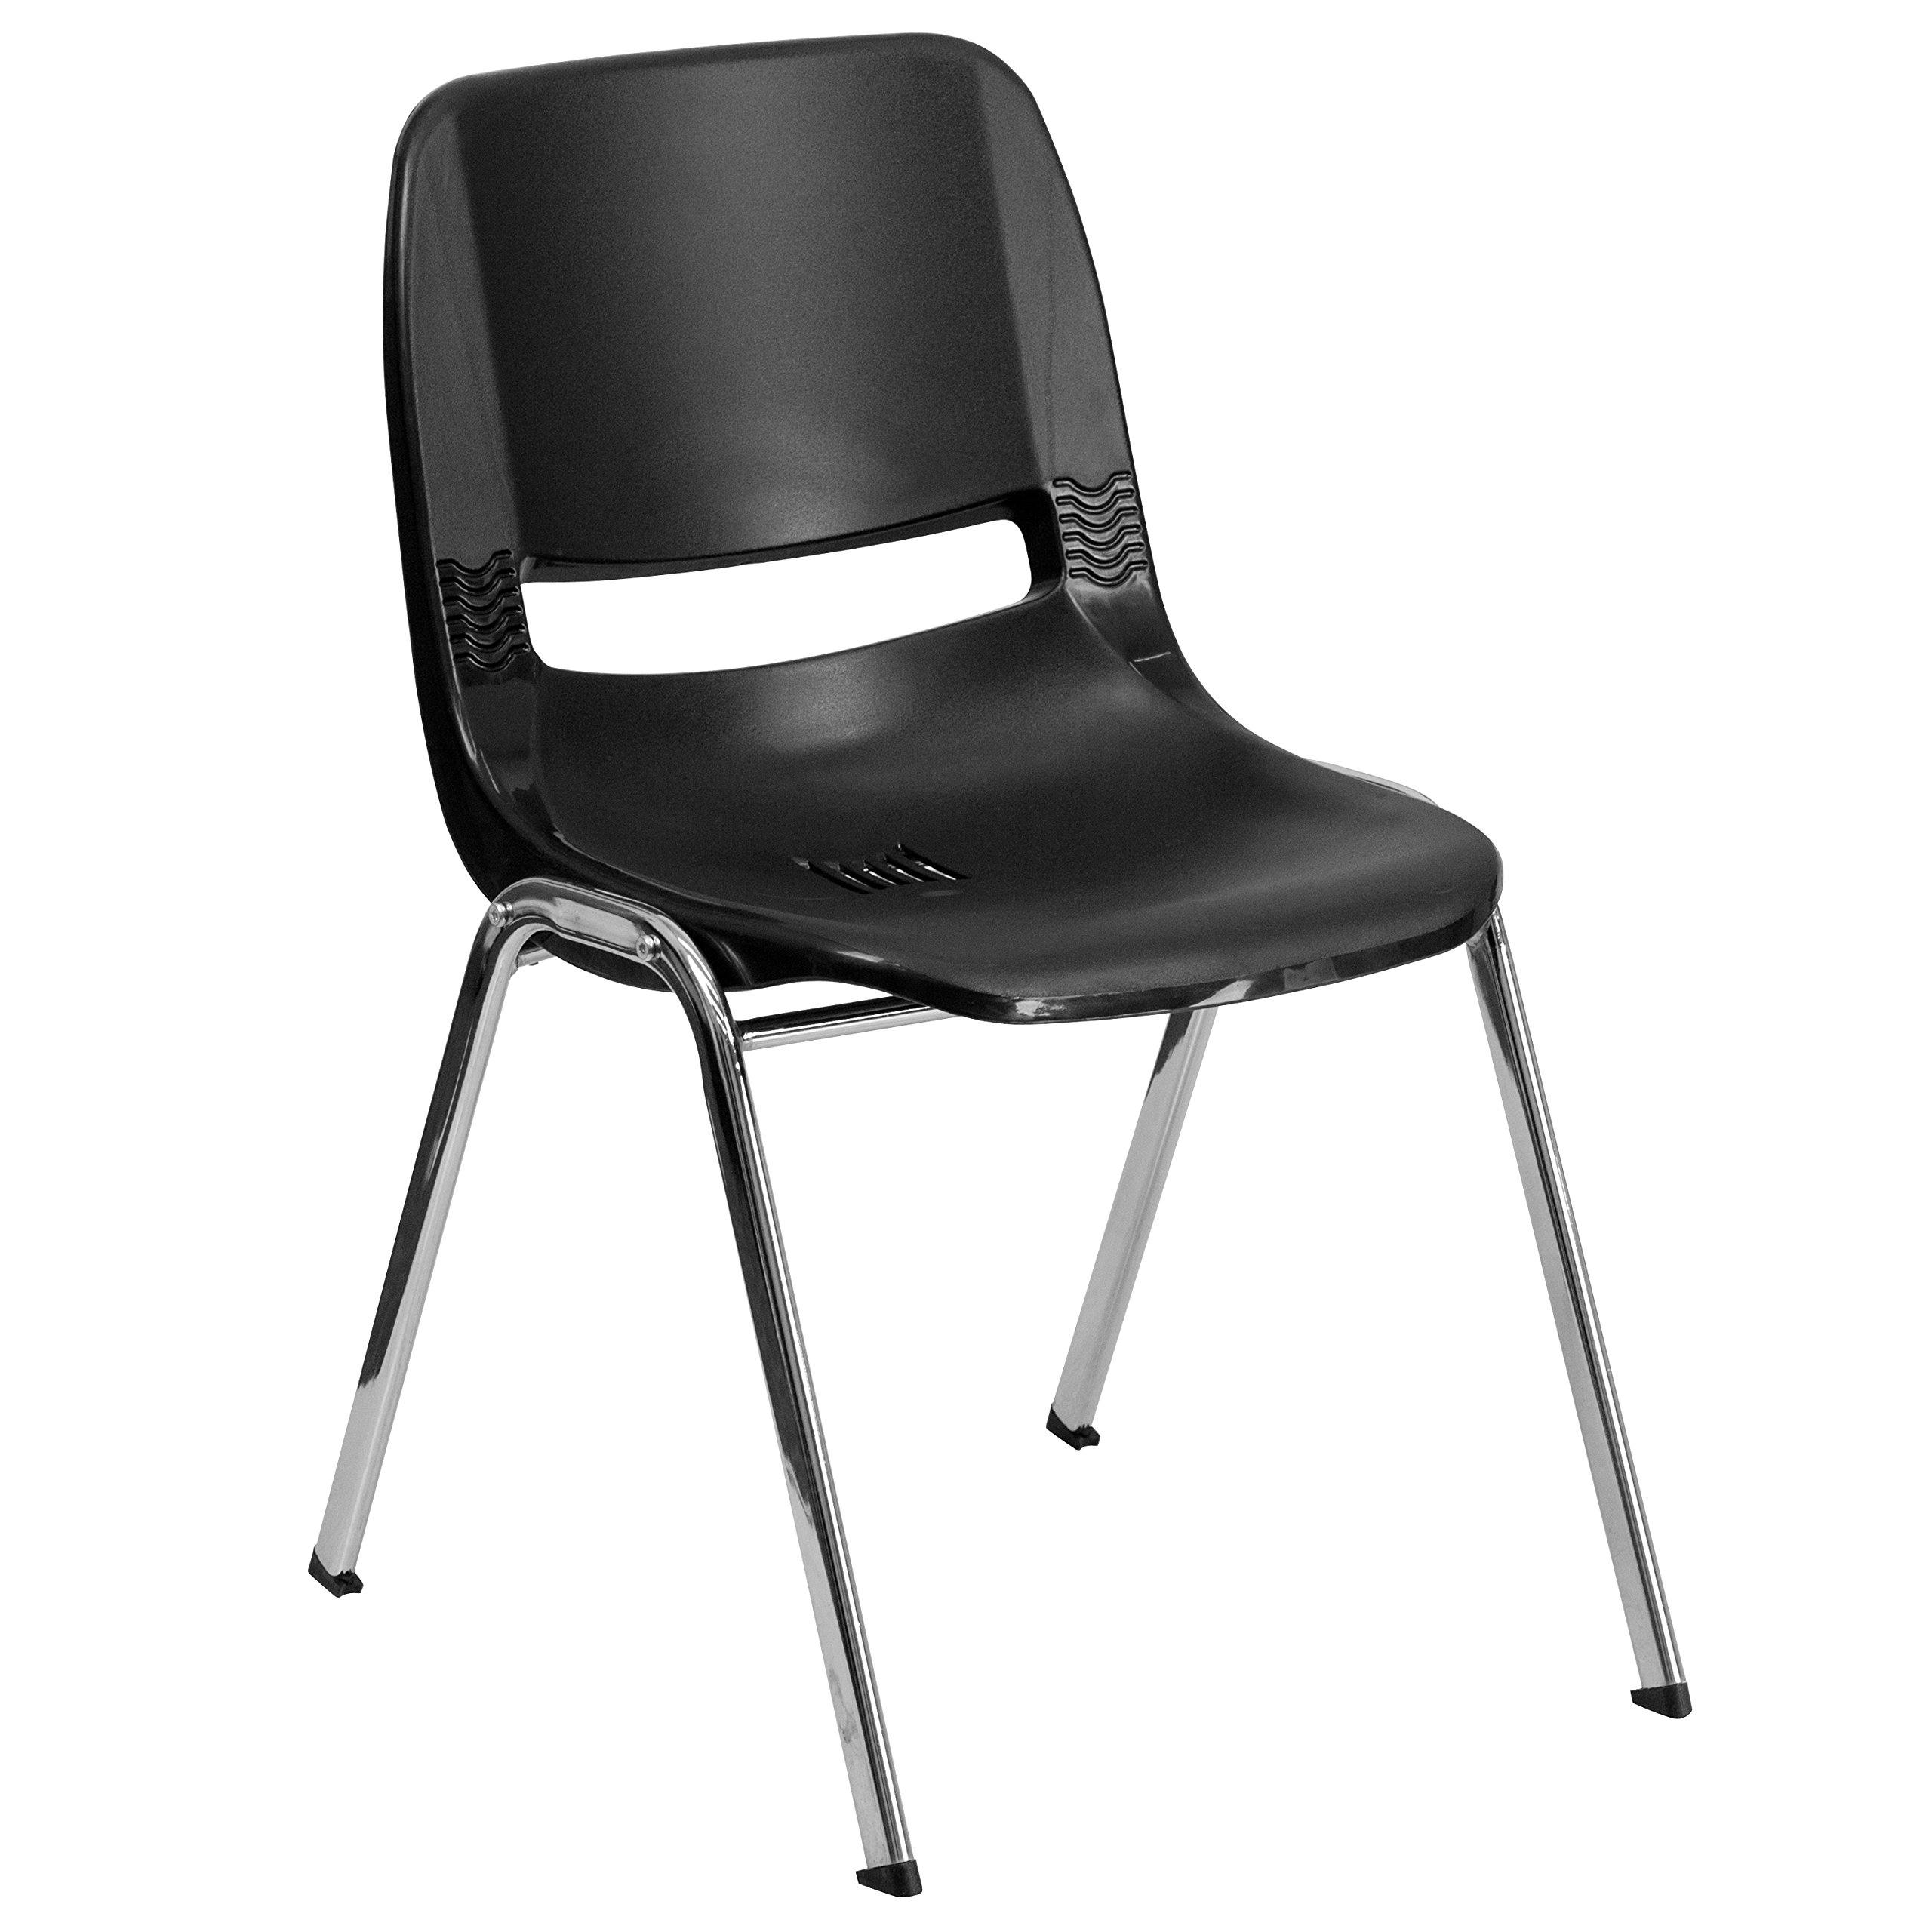 Flash Furniture HERCULES Series 440 lb. Capacity Black Ergonomic Shell Stack Chair with Chrome Frame and 12'' Seat Height